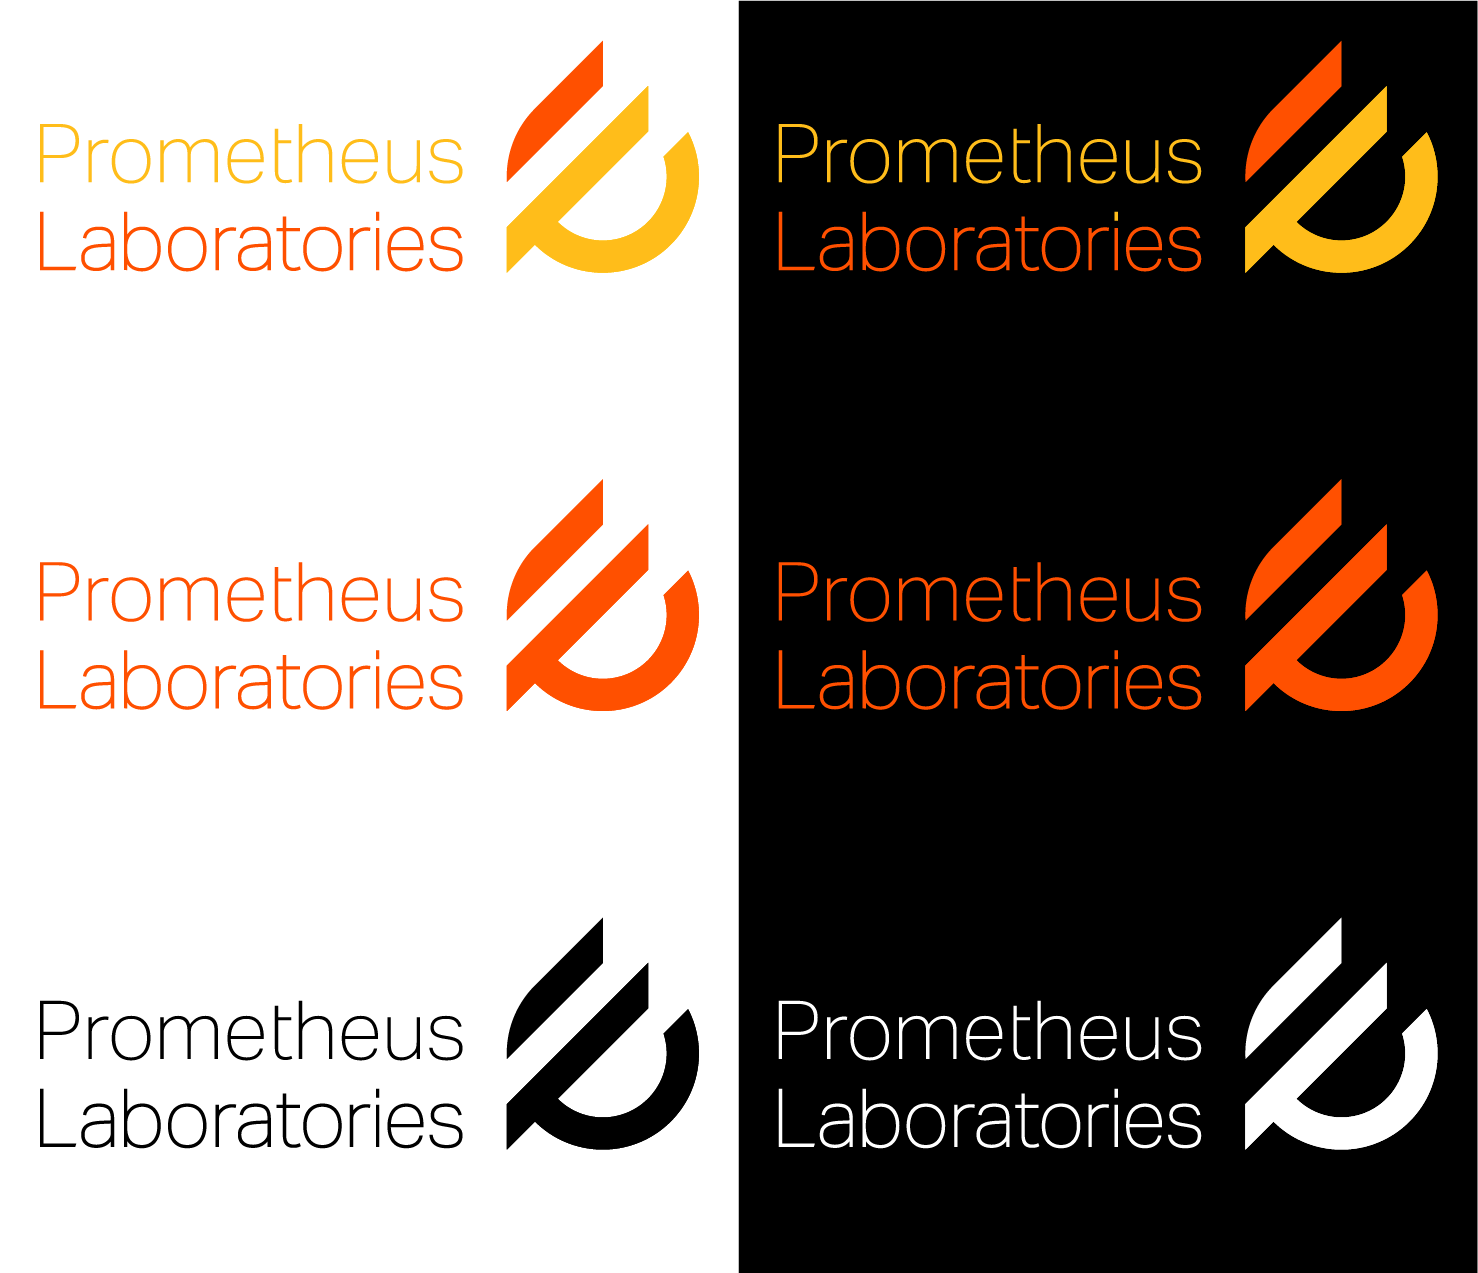 Prometheus%20Labs%20Proof.png